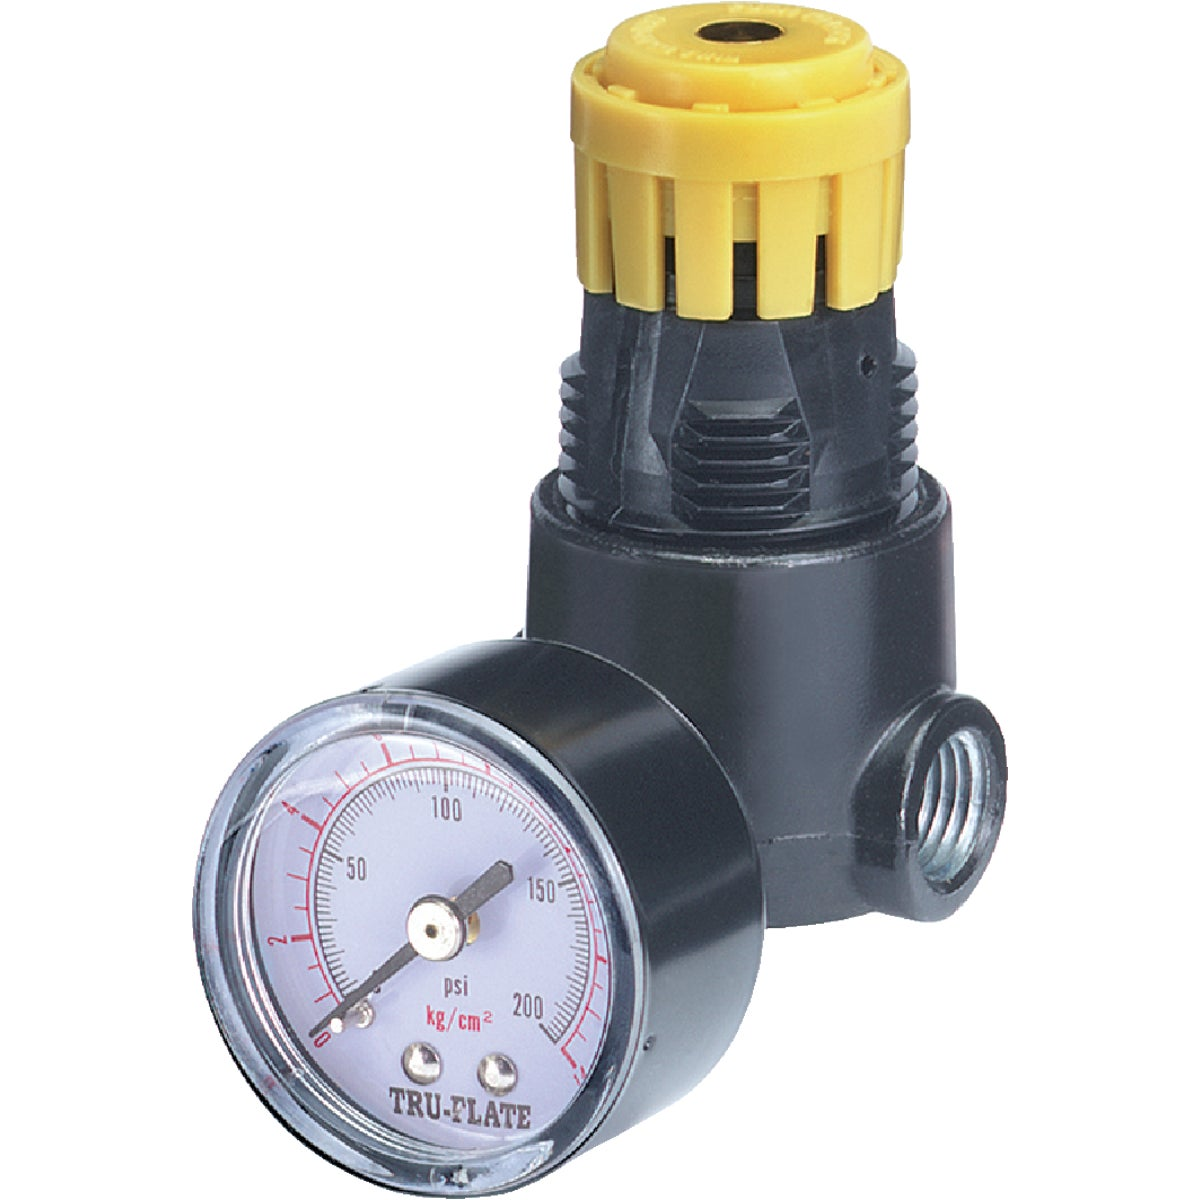 MINI-AIR REGULATOR